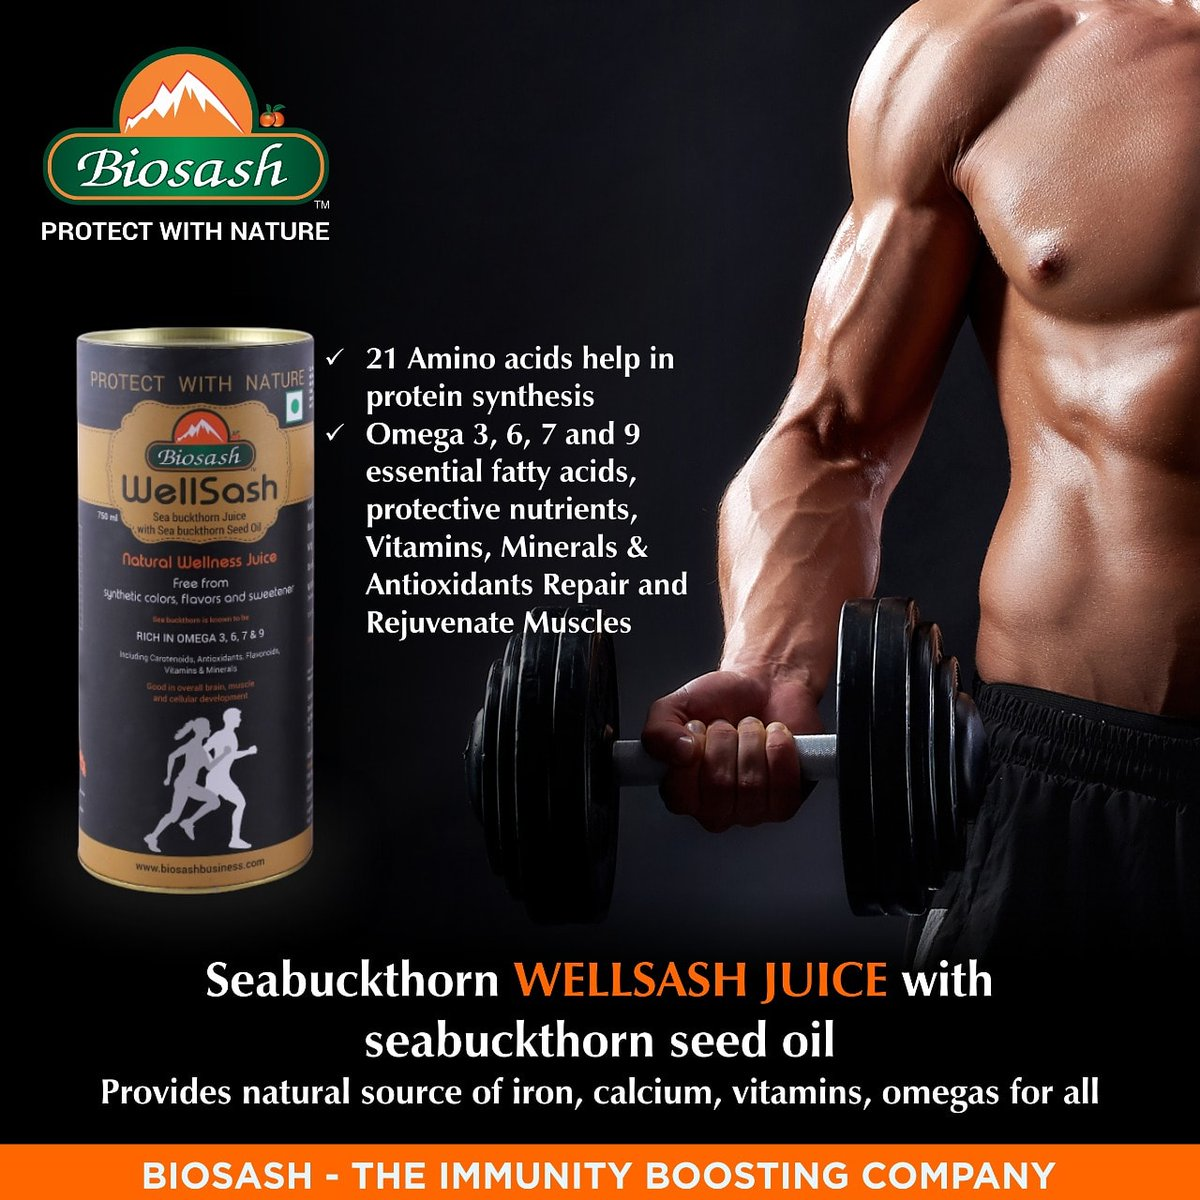 Seabuckthorn Wellsash Juice with Seabuckthorn seed oil provides natural source of Iron, Calcium Viamins and Omegas.  21 Amino acids help in protein synthesis.   #Wellsash #seabuckthorn #protein pic.twitter.com/nvDYpX0cLm